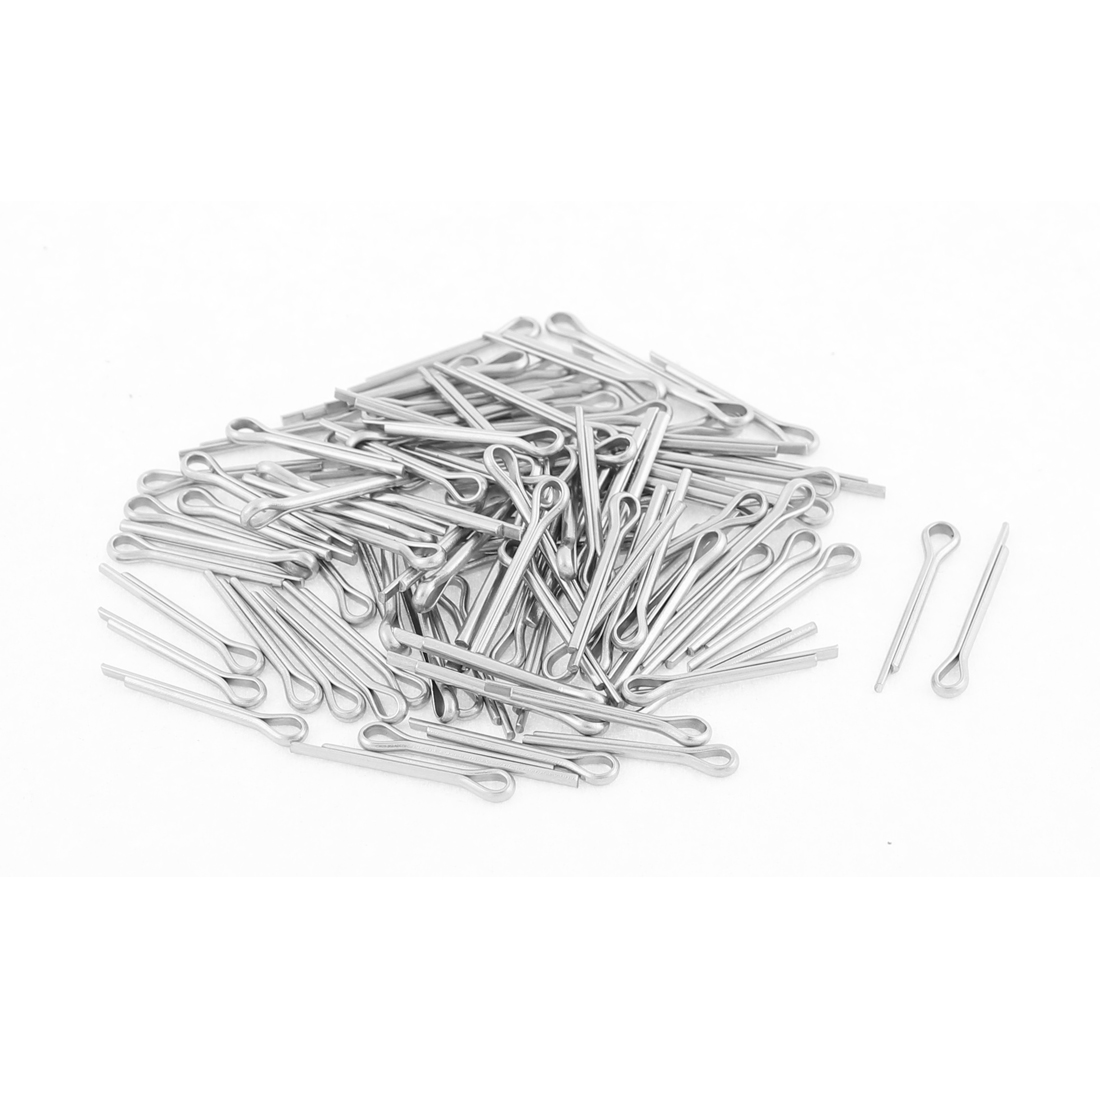 M1.2x12mm 304 Stainless Steel Split Cotter Pins Silver Tone 100pcs